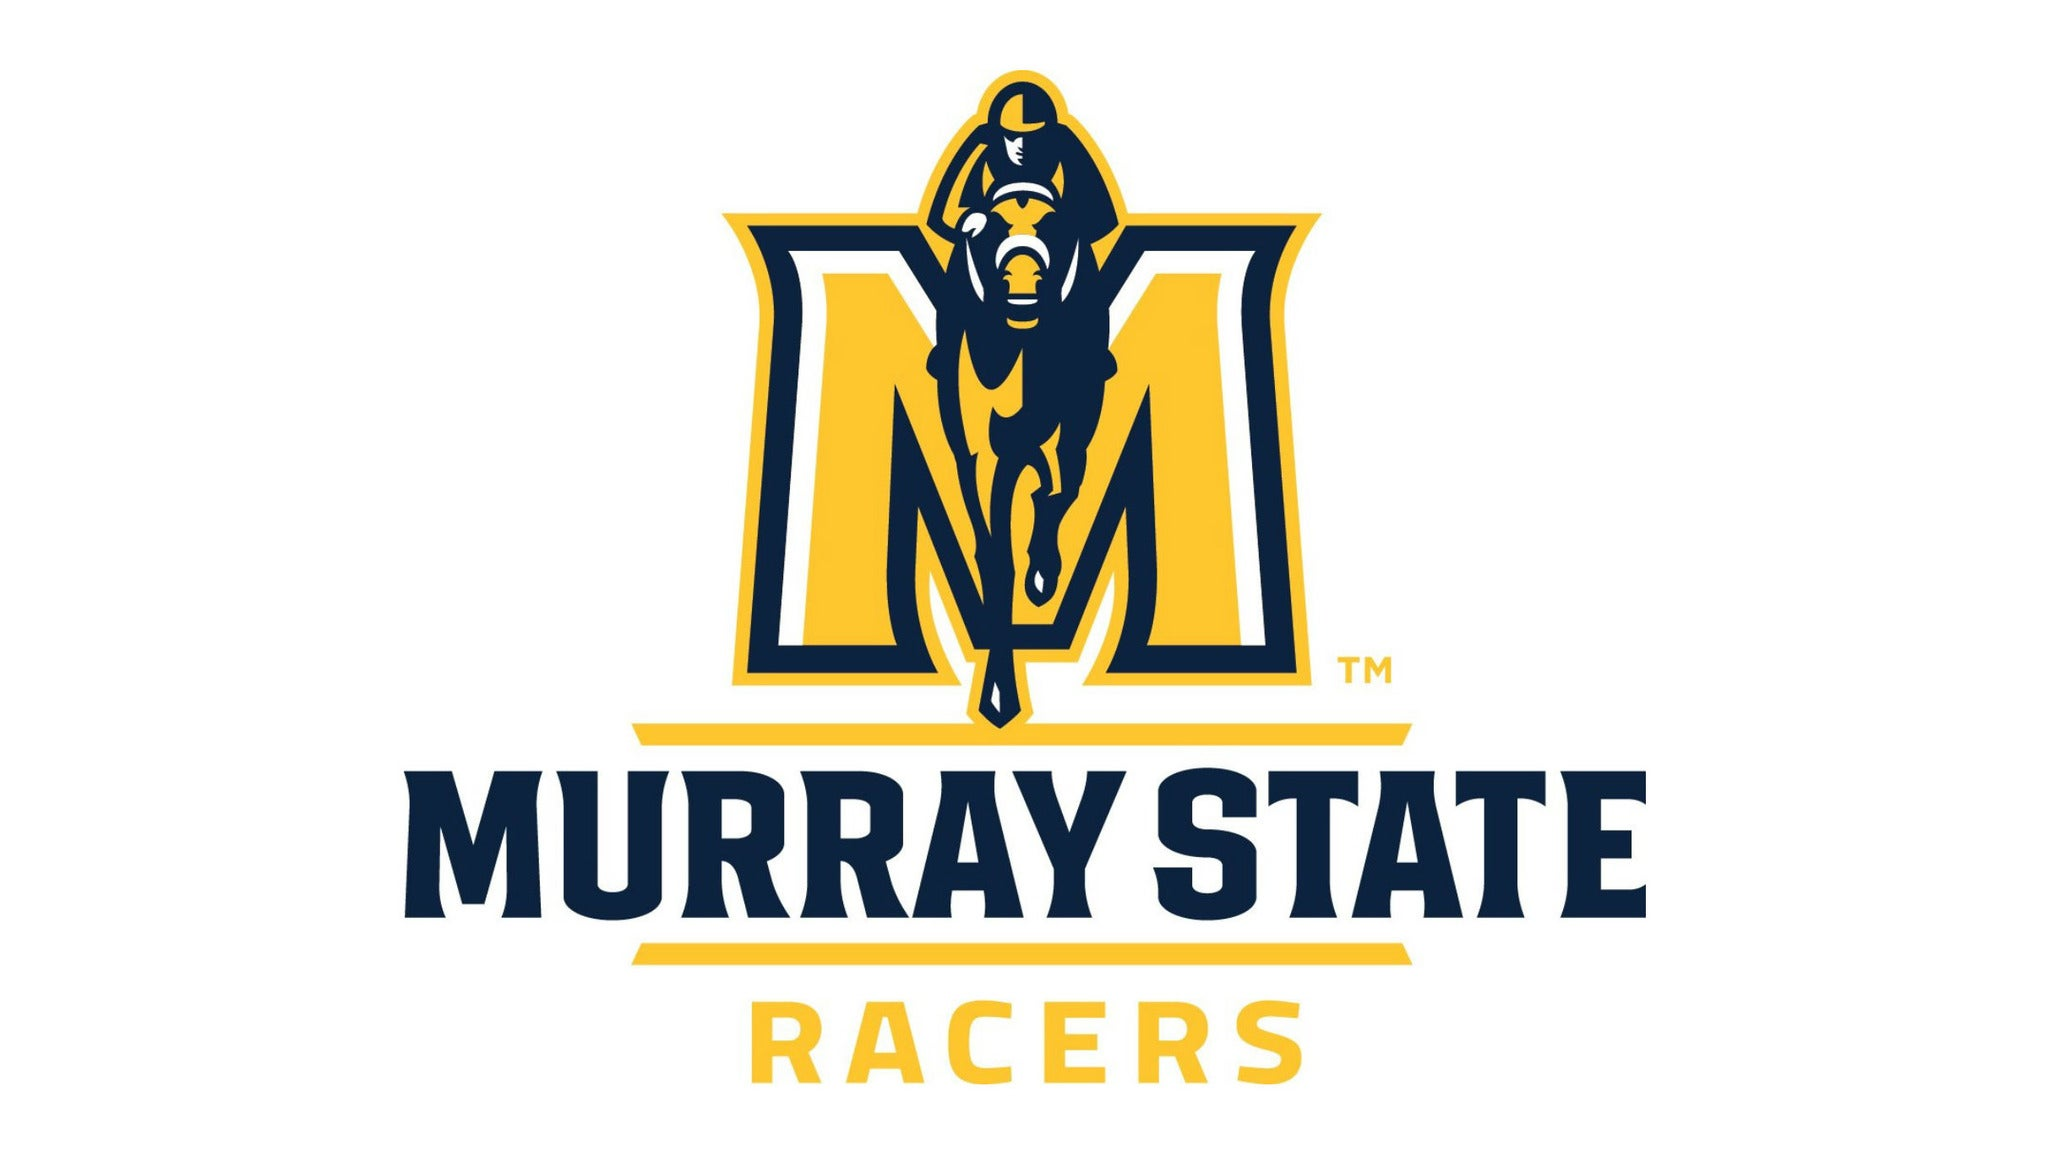 Murray State Racers Mens Basketball at CFSB Center